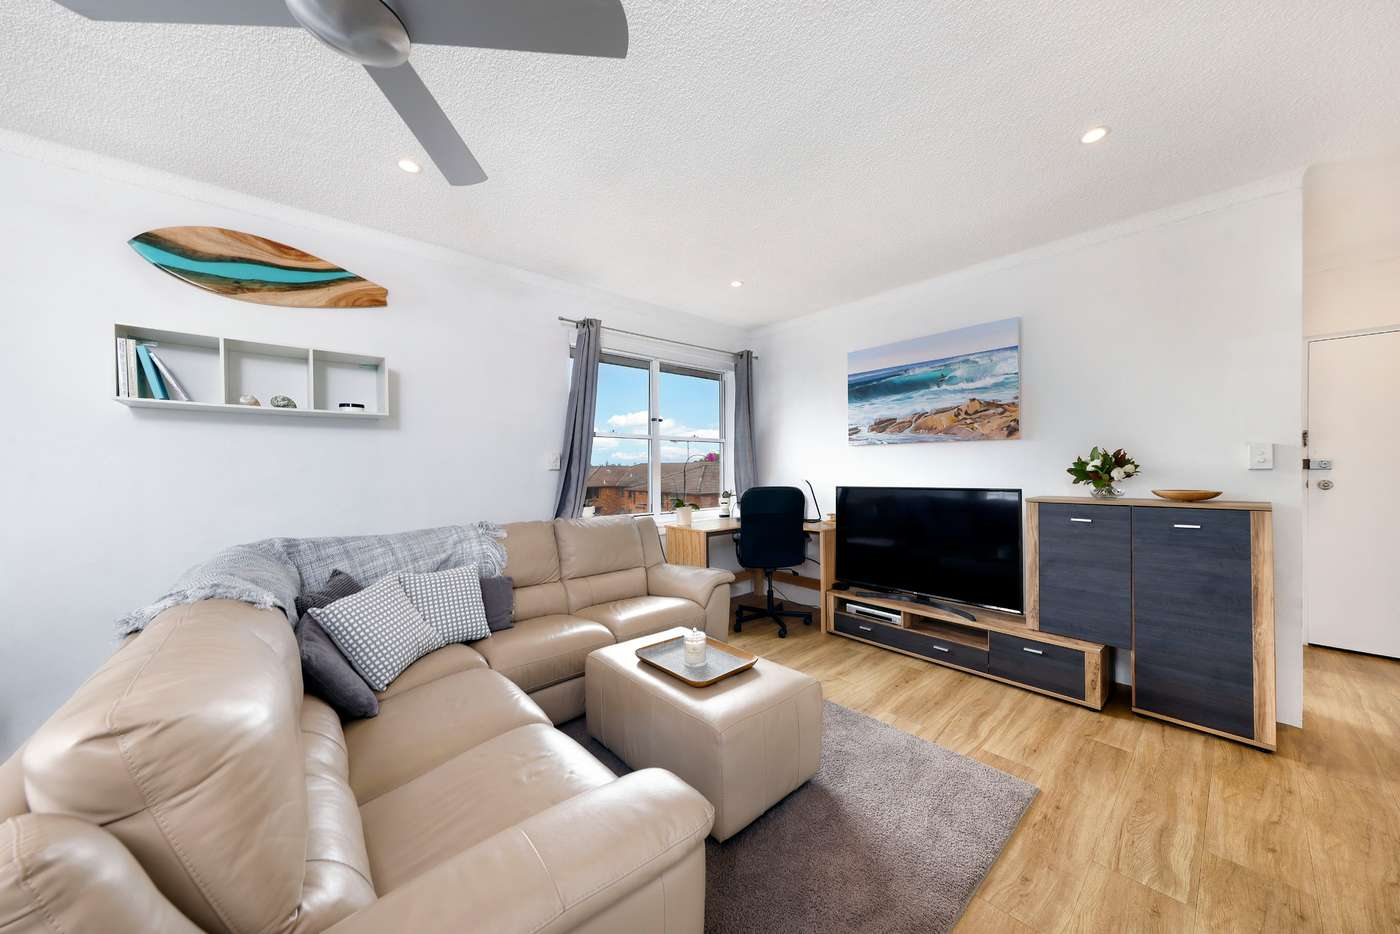 Main view of Homely apartment listing, 10/32 Croydon Street, Cronulla NSW 2230